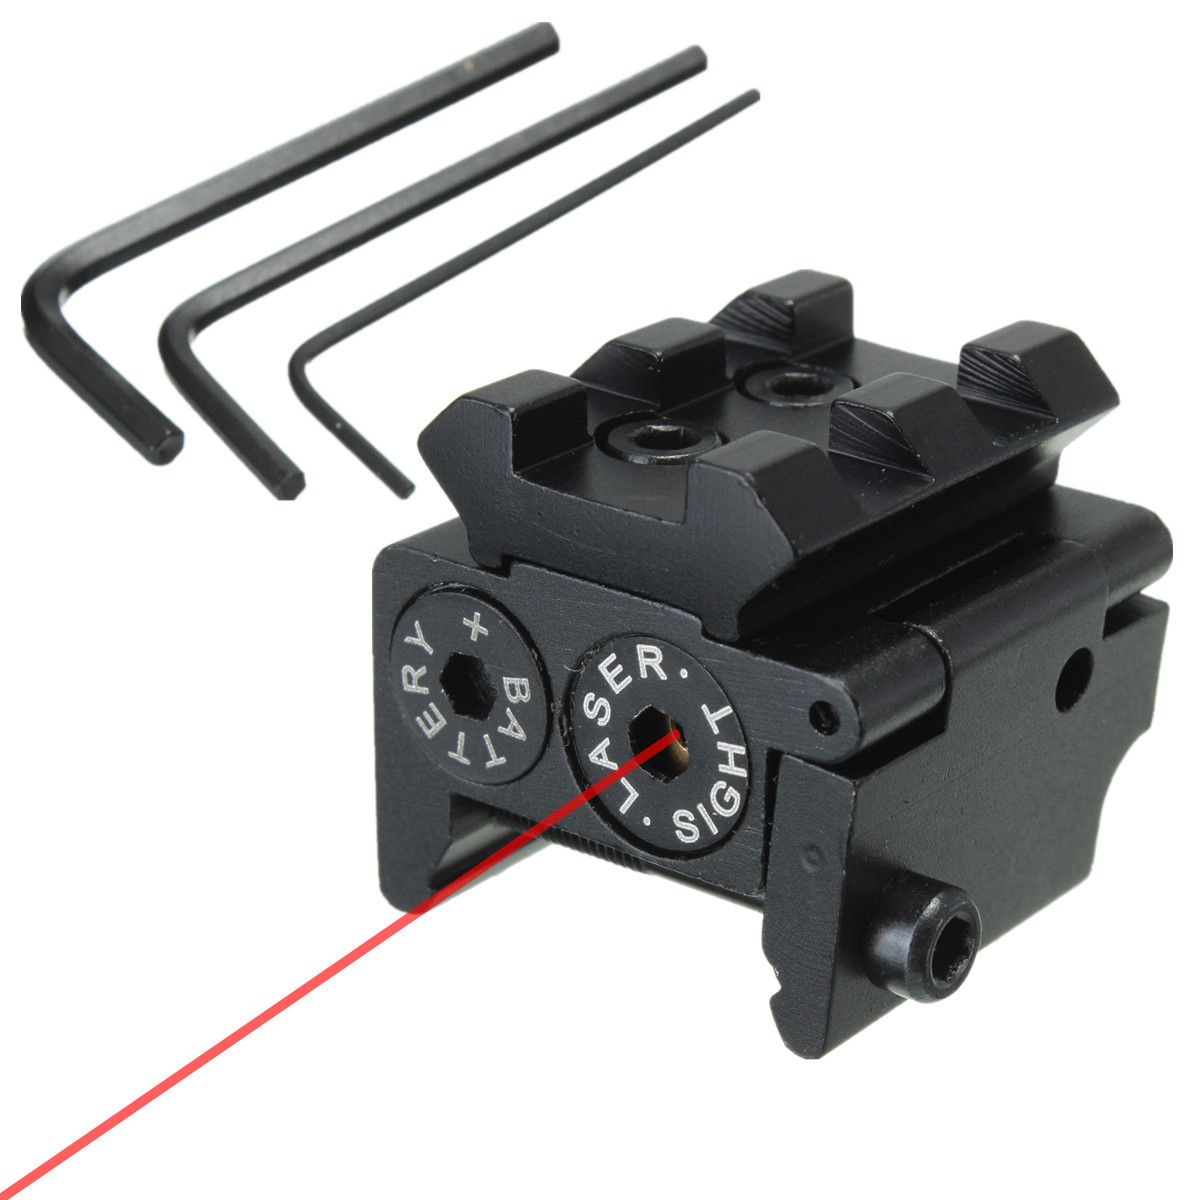 Mini Compact Tactical Red Dot Laser Bore Sight Scope With 20mm Picatinny Rail Mount new universal ac 100 240v us plug for dc 12v 2a 24w power supply adapter charger for led strips cctv security camera